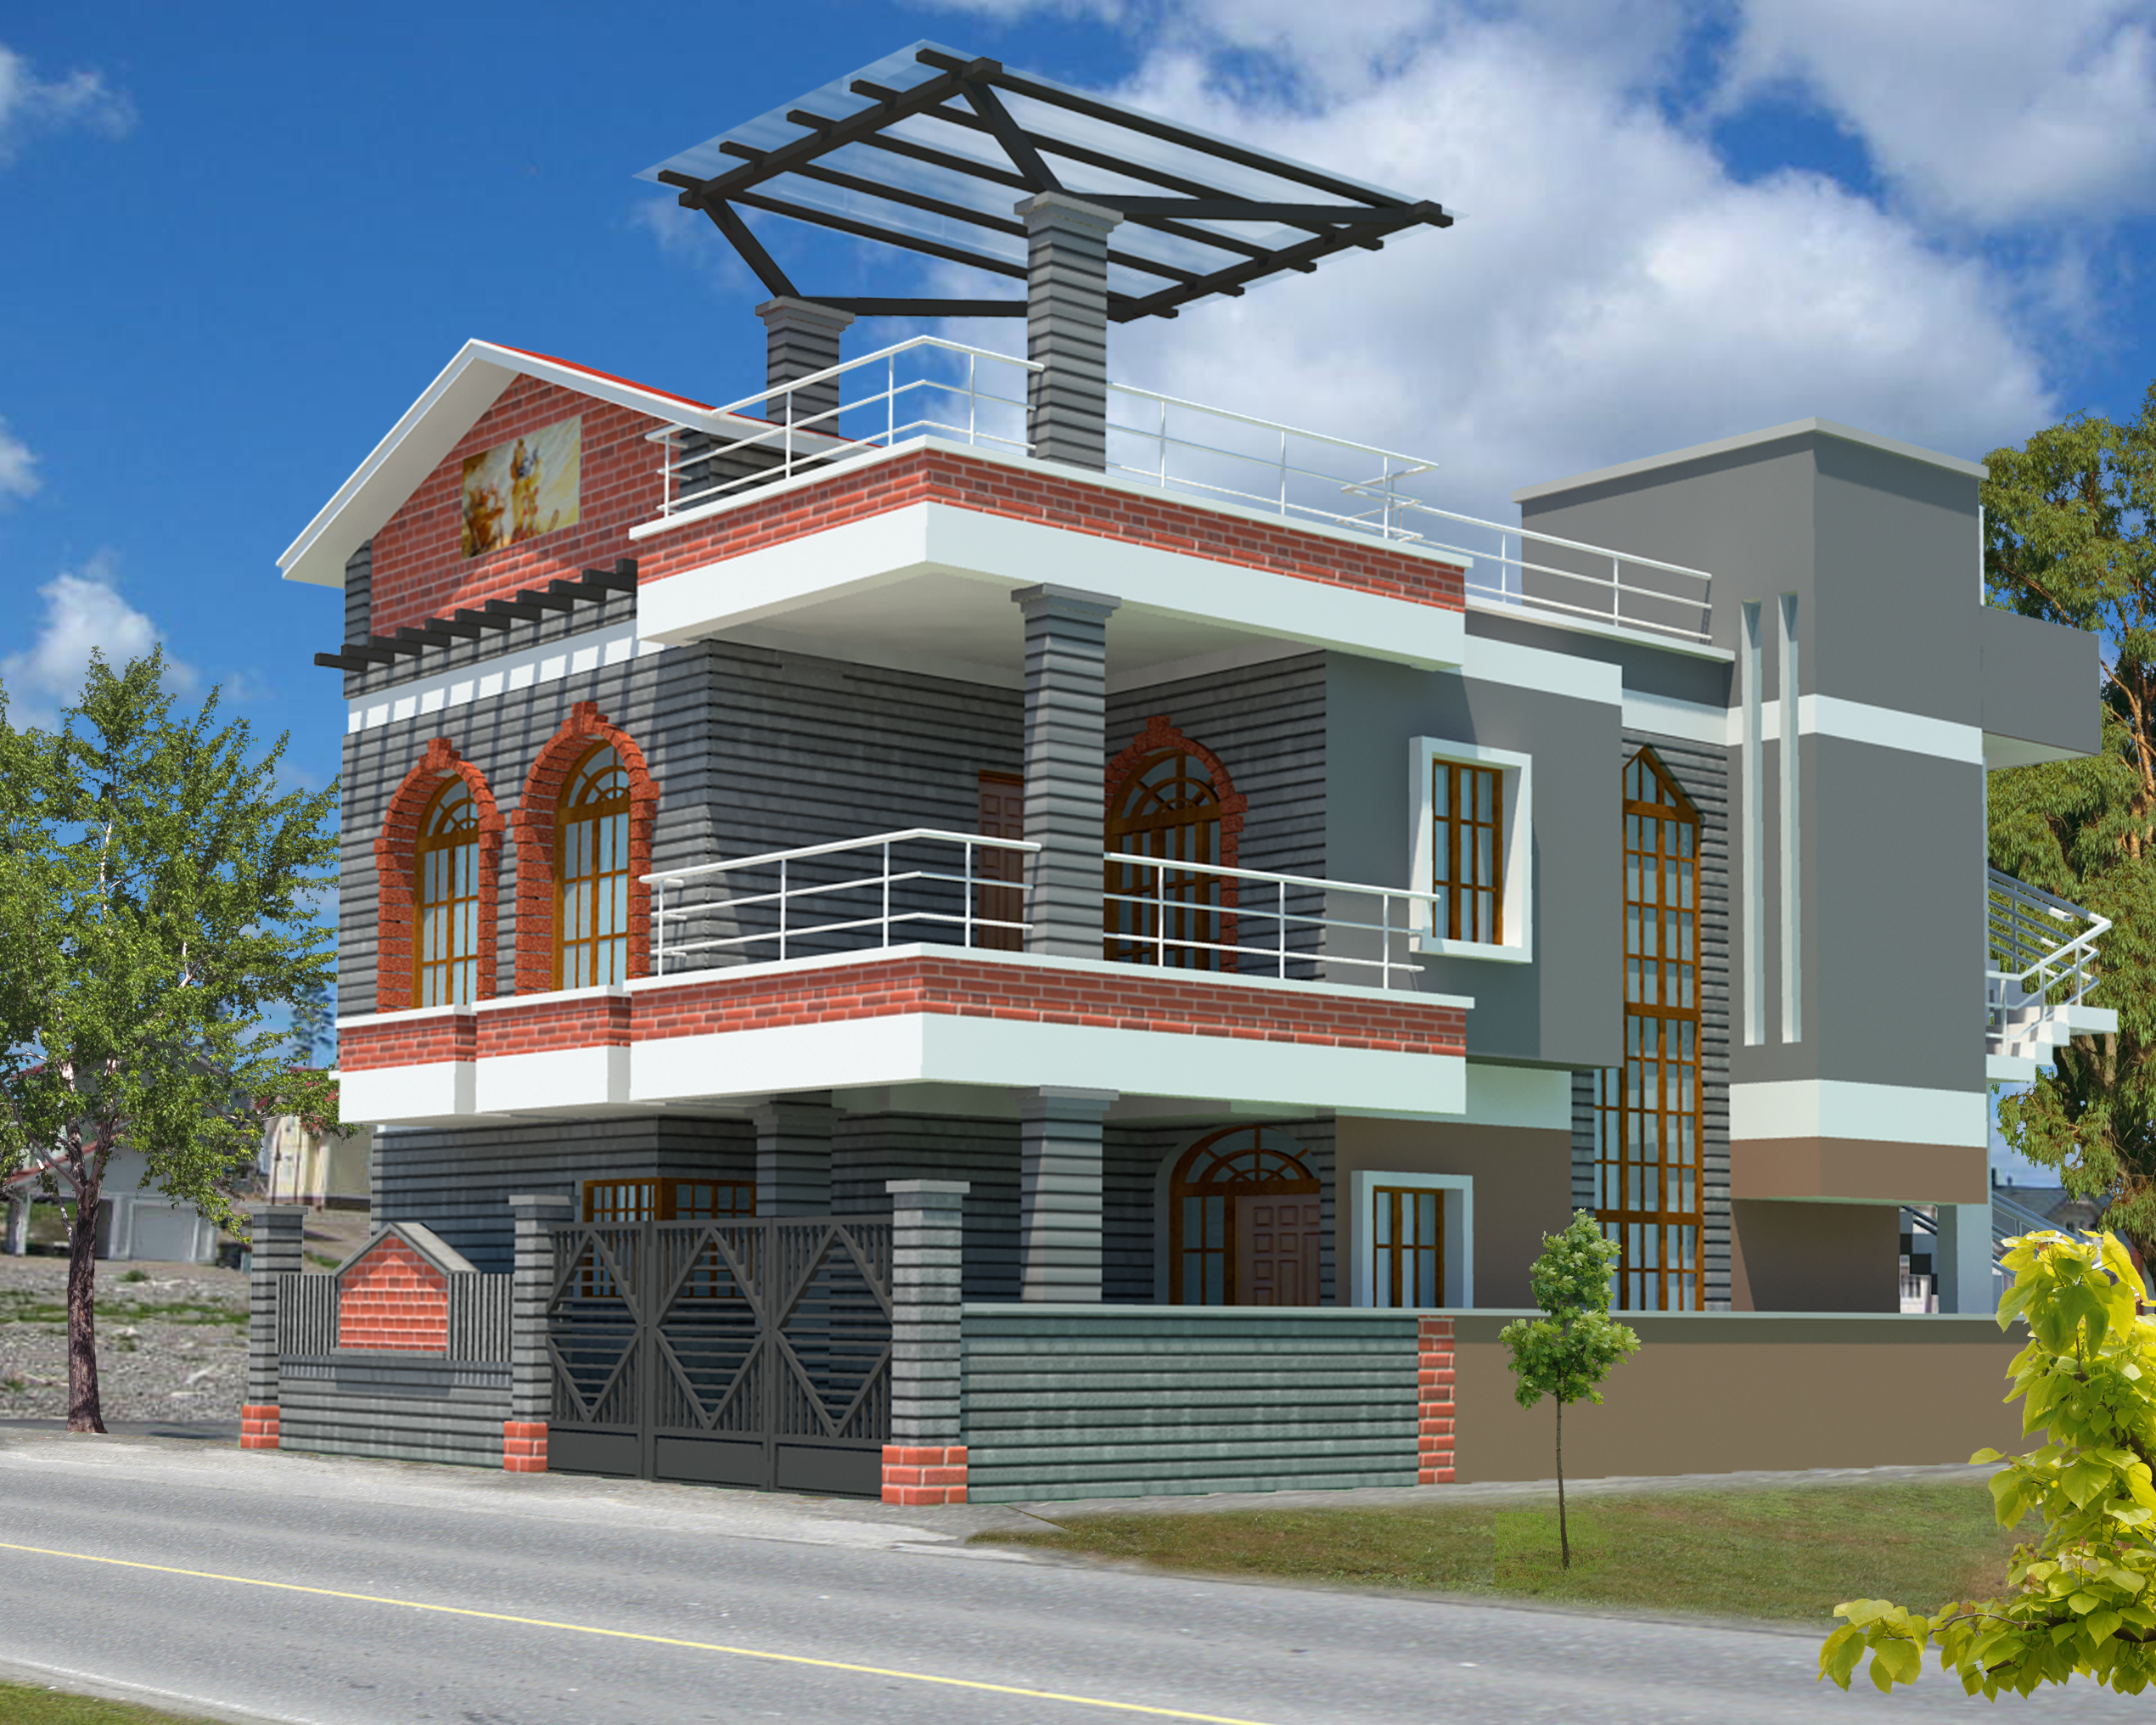 Interior exterior plan make use of websites to build a 3d house designing